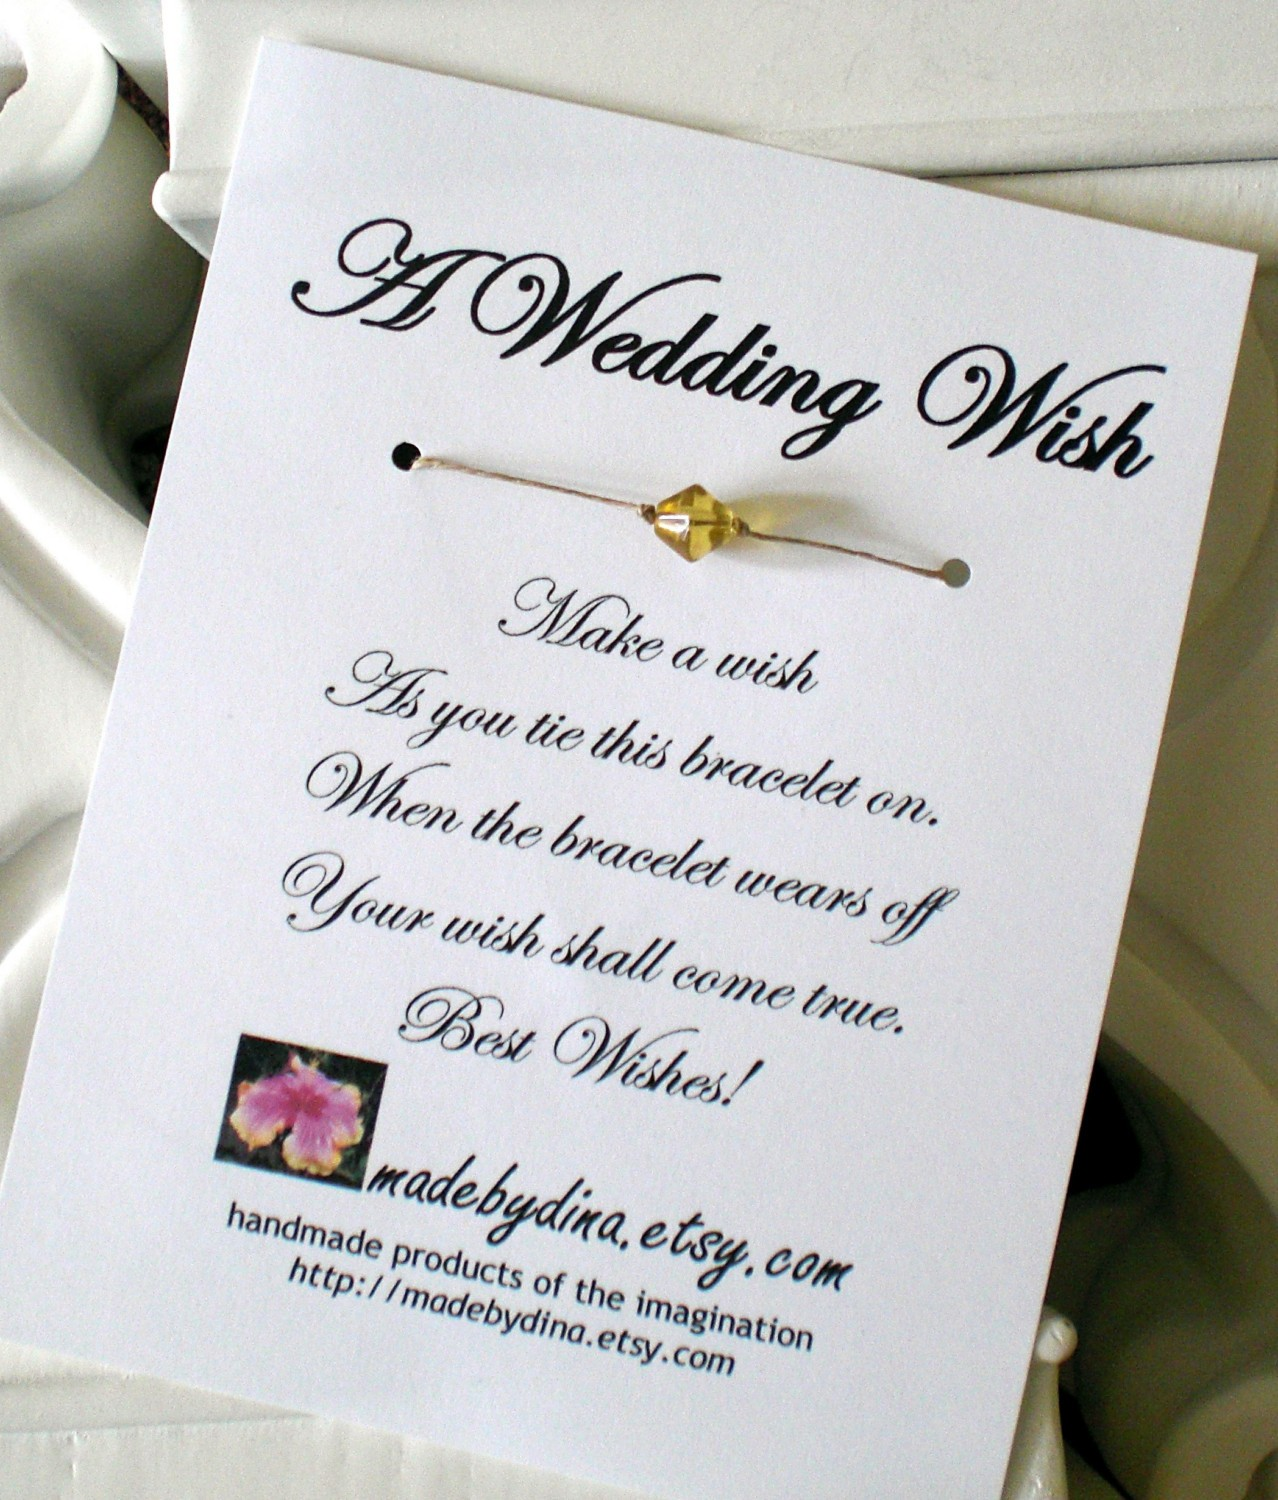 Wedding Wishes Quotes. QuotesGram